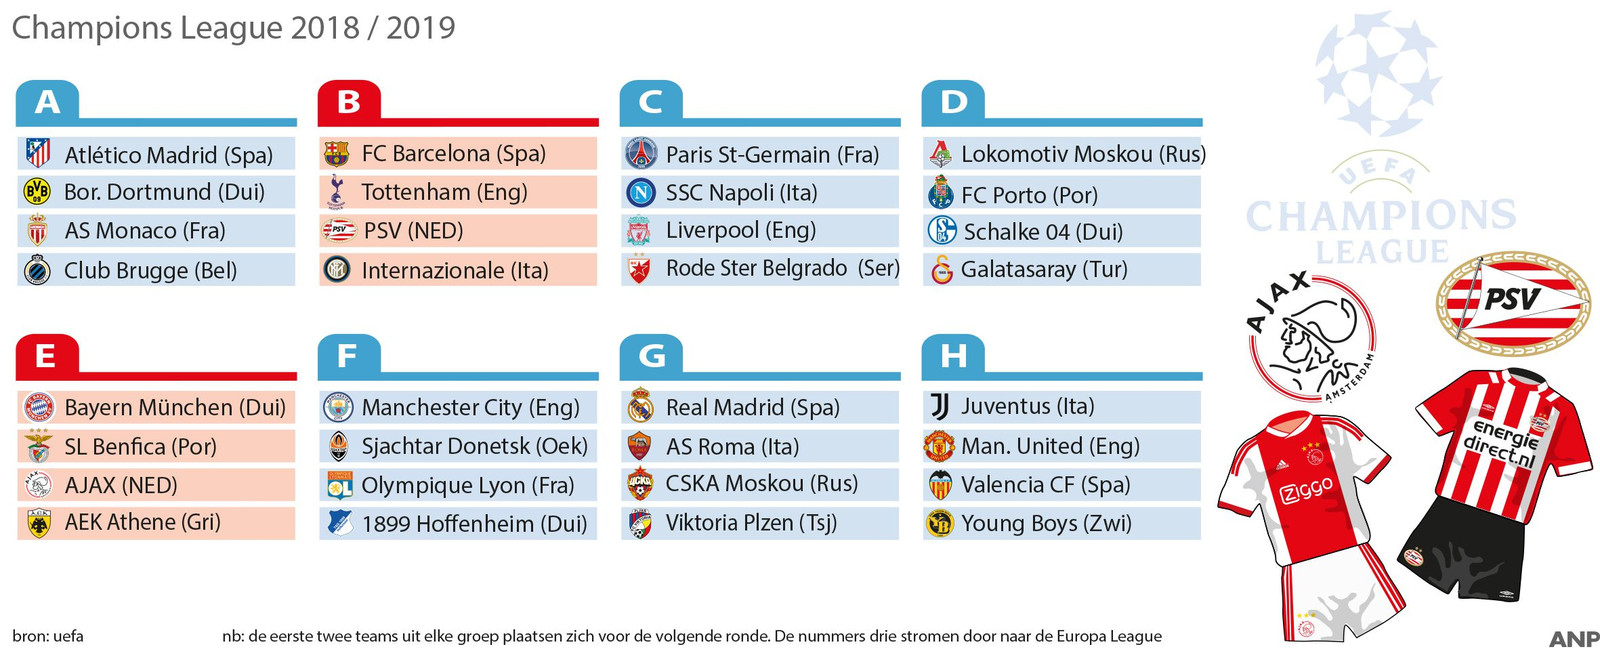 Champions League 2018 / 2019: speelschema Ajax en PSV